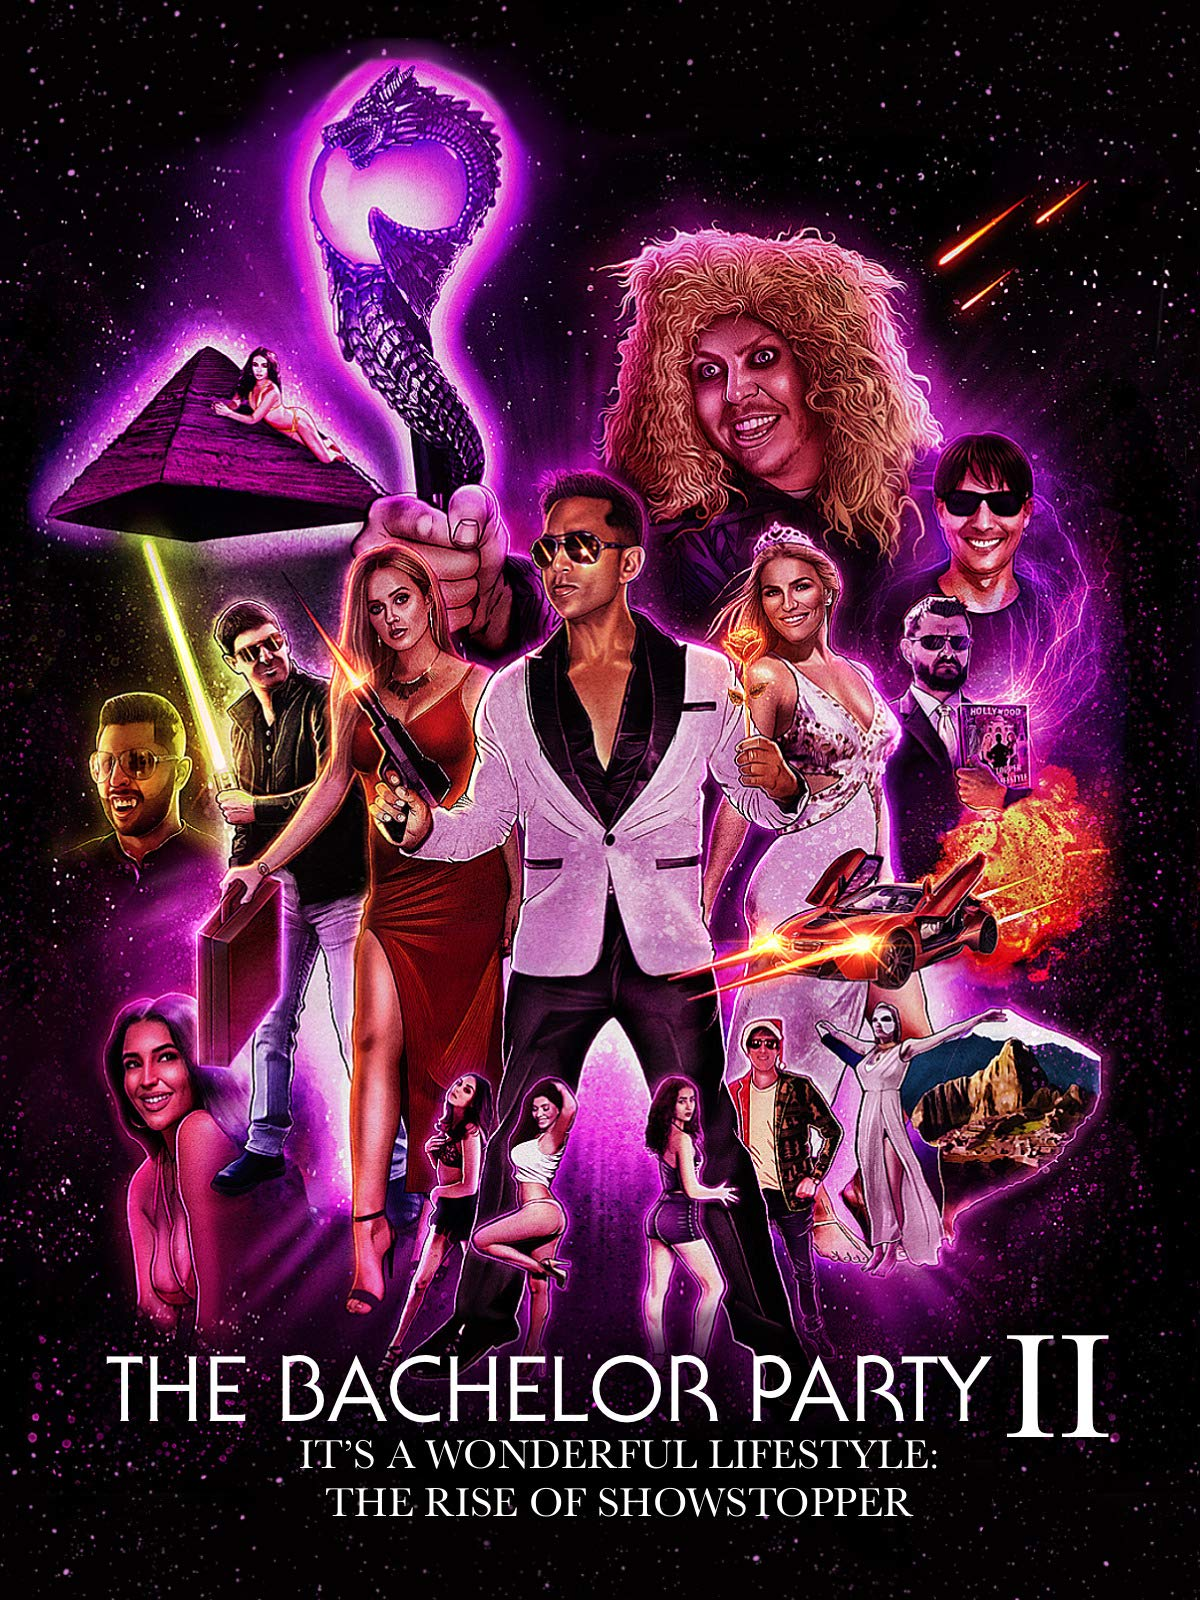 The Bachelor Party: Episode 2 - It's a Wonderful Lifestyle: The Rise of Showstopper